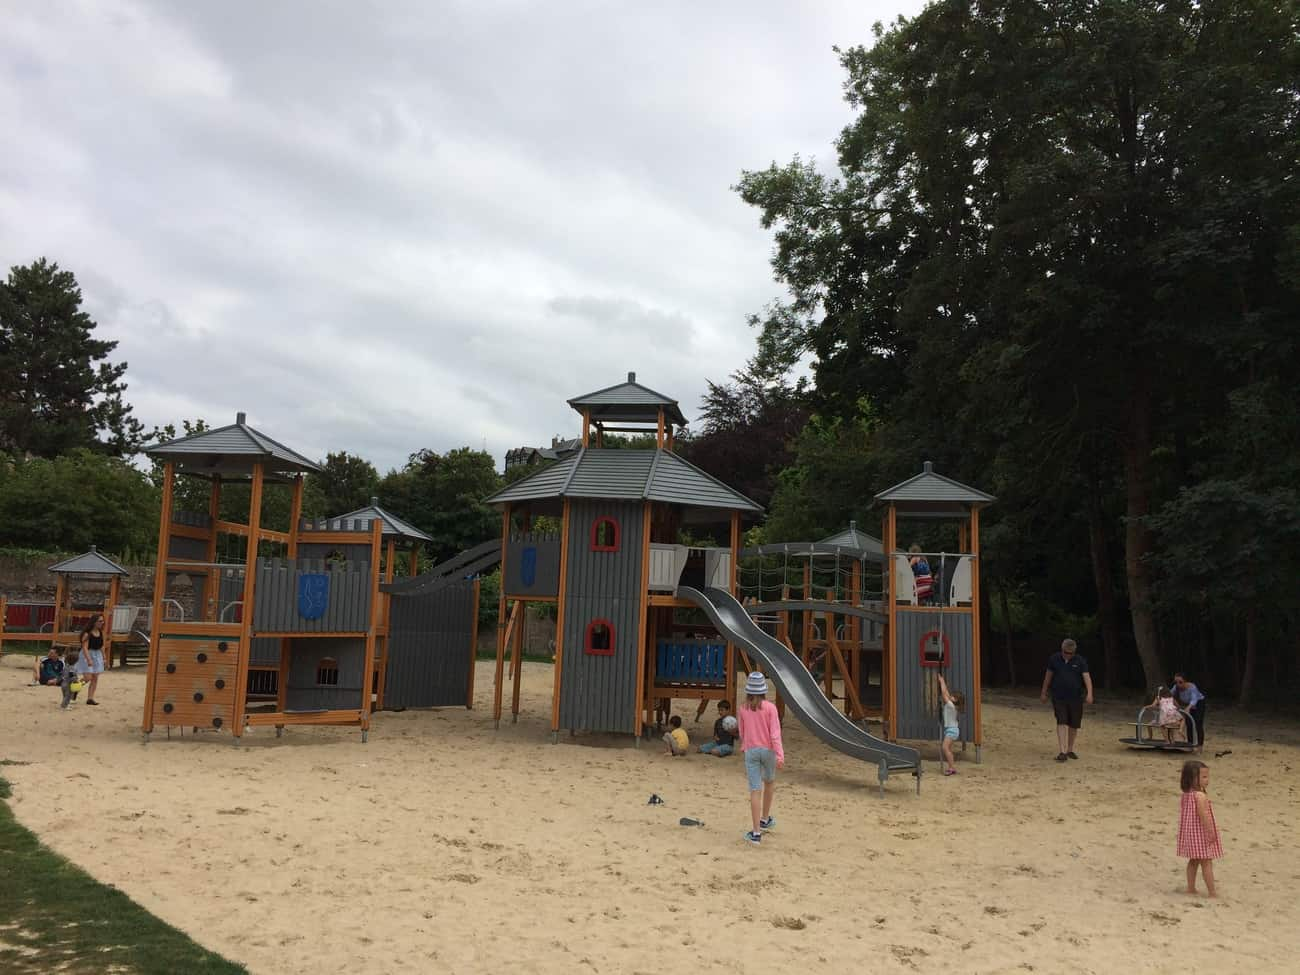 St Valery sur Somme - playground